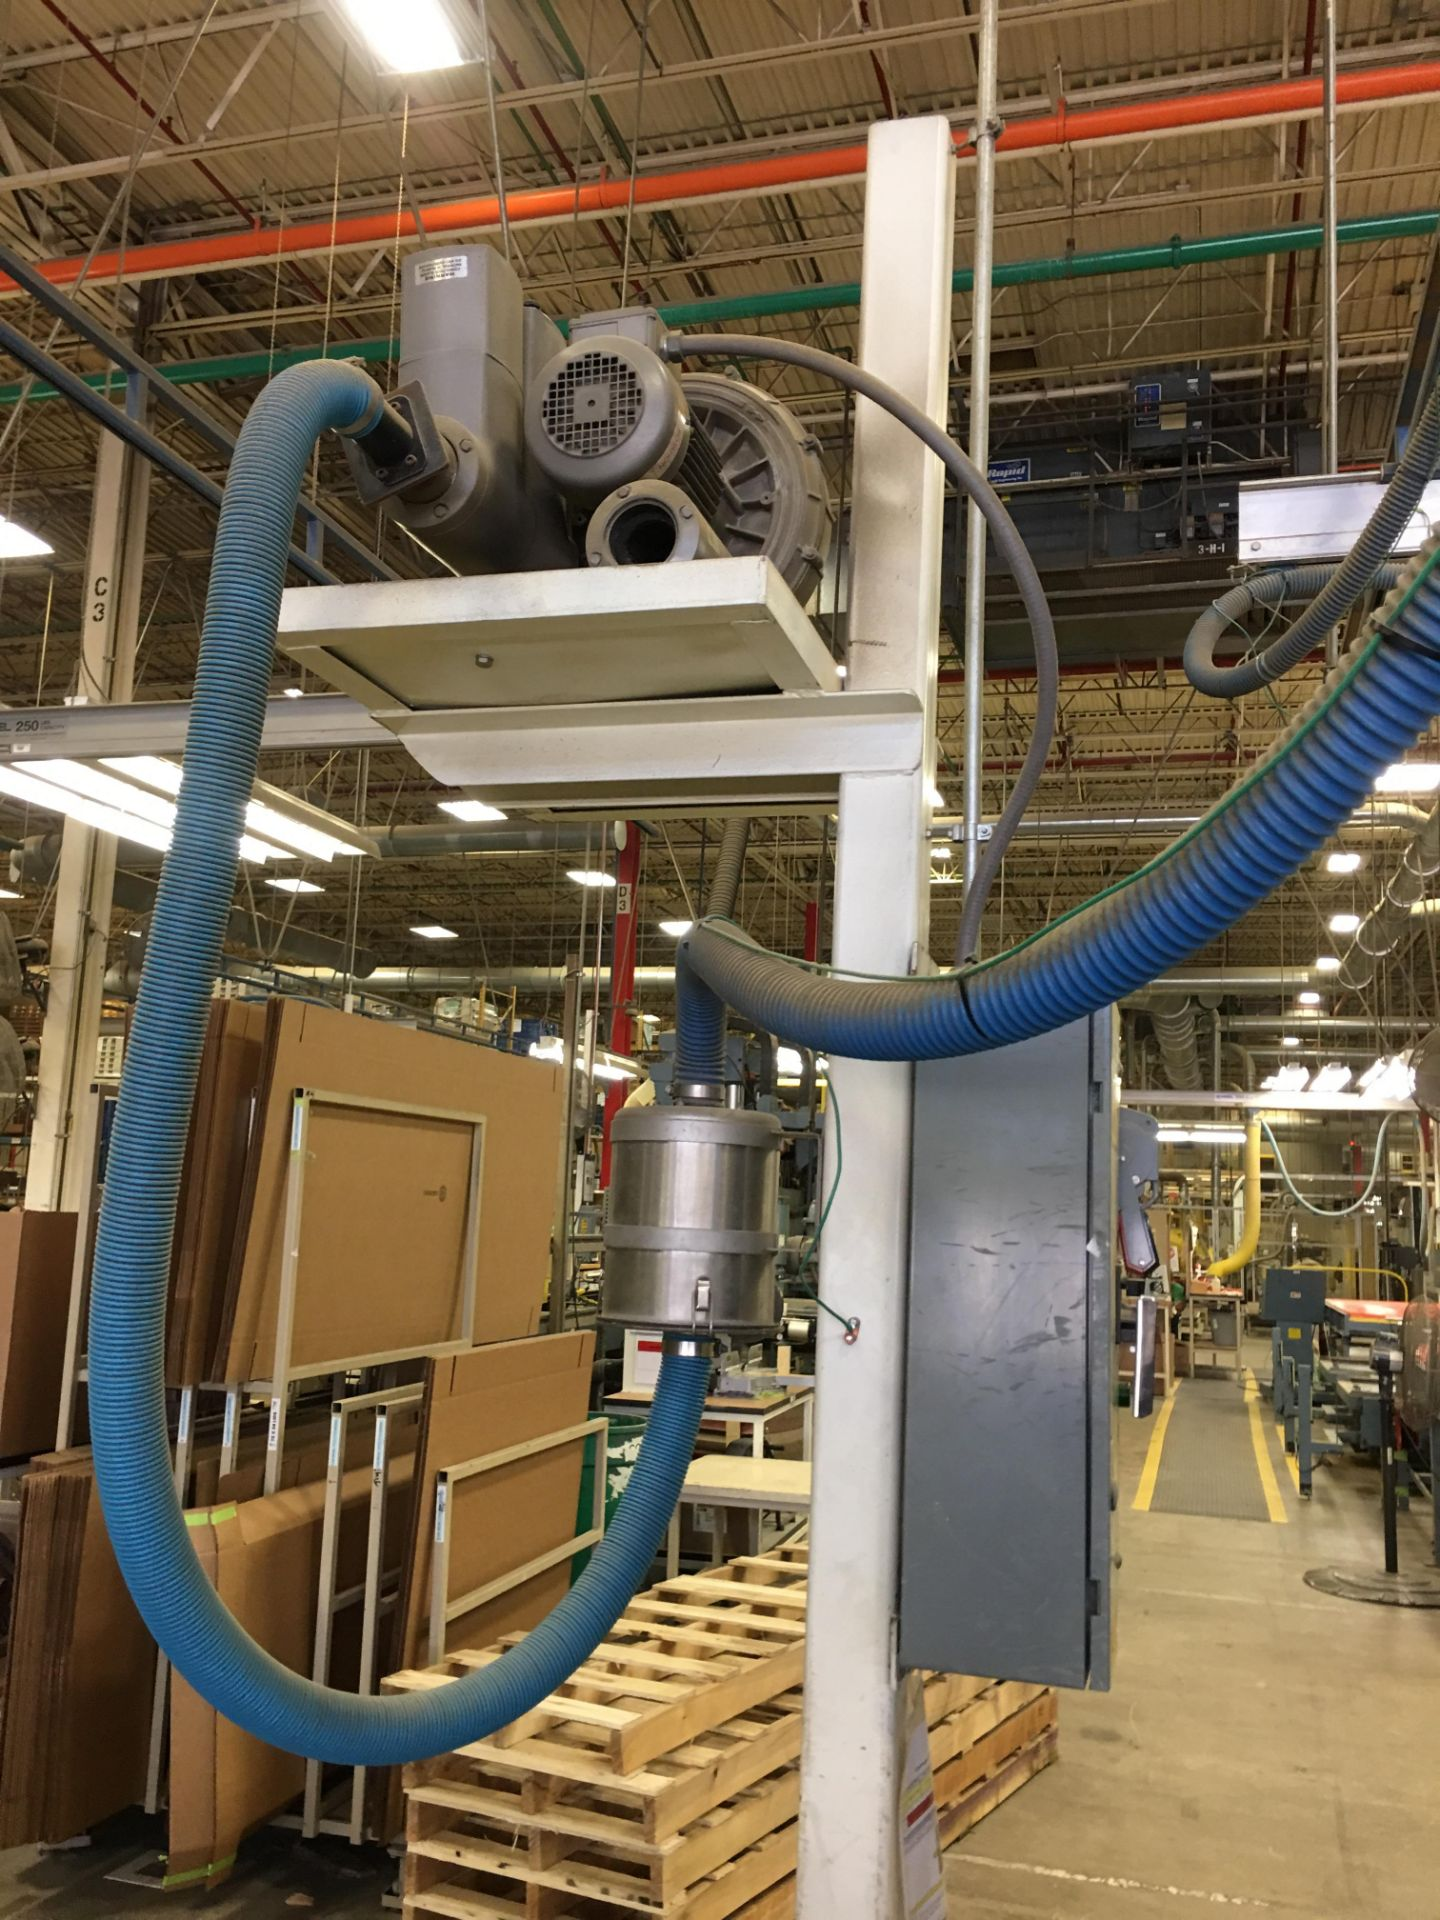 VACUUM LIFTER WITH PUMP AND OVERHEAD GANTRY RAILS - Image 2 of 3